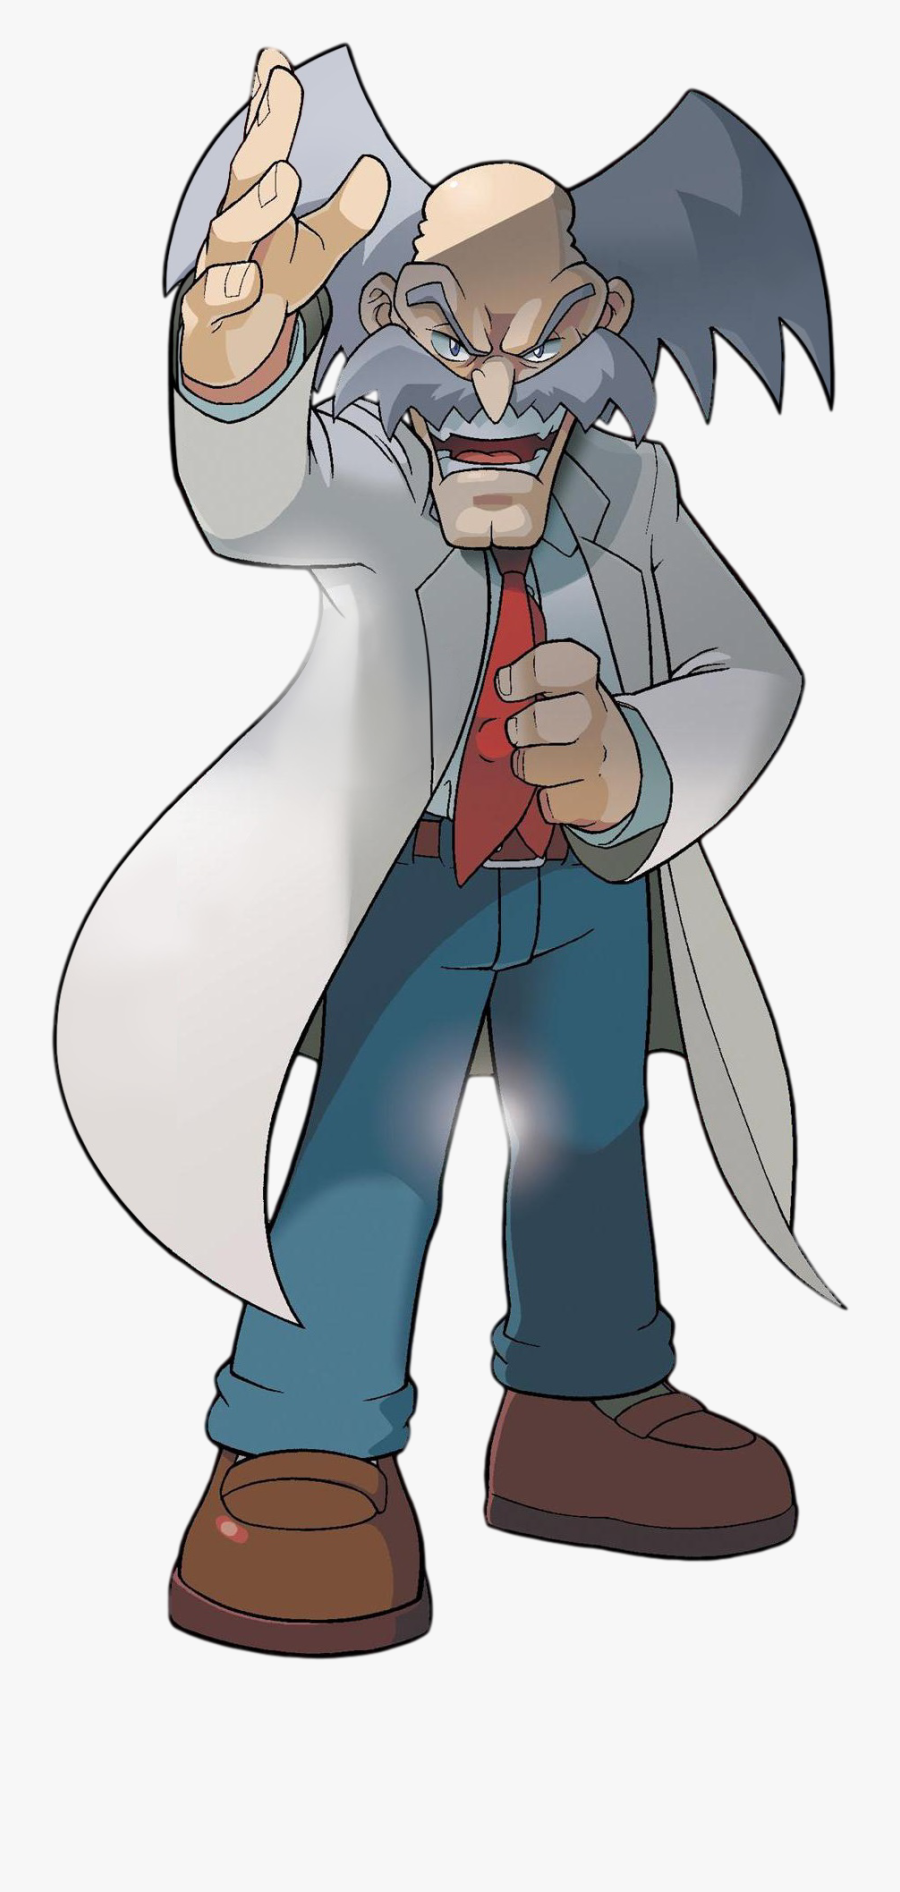 Doctor Wily Sonic News Network Fandom Powered Ⓒ - Dr Wily Megaman X, Transparent Clipart